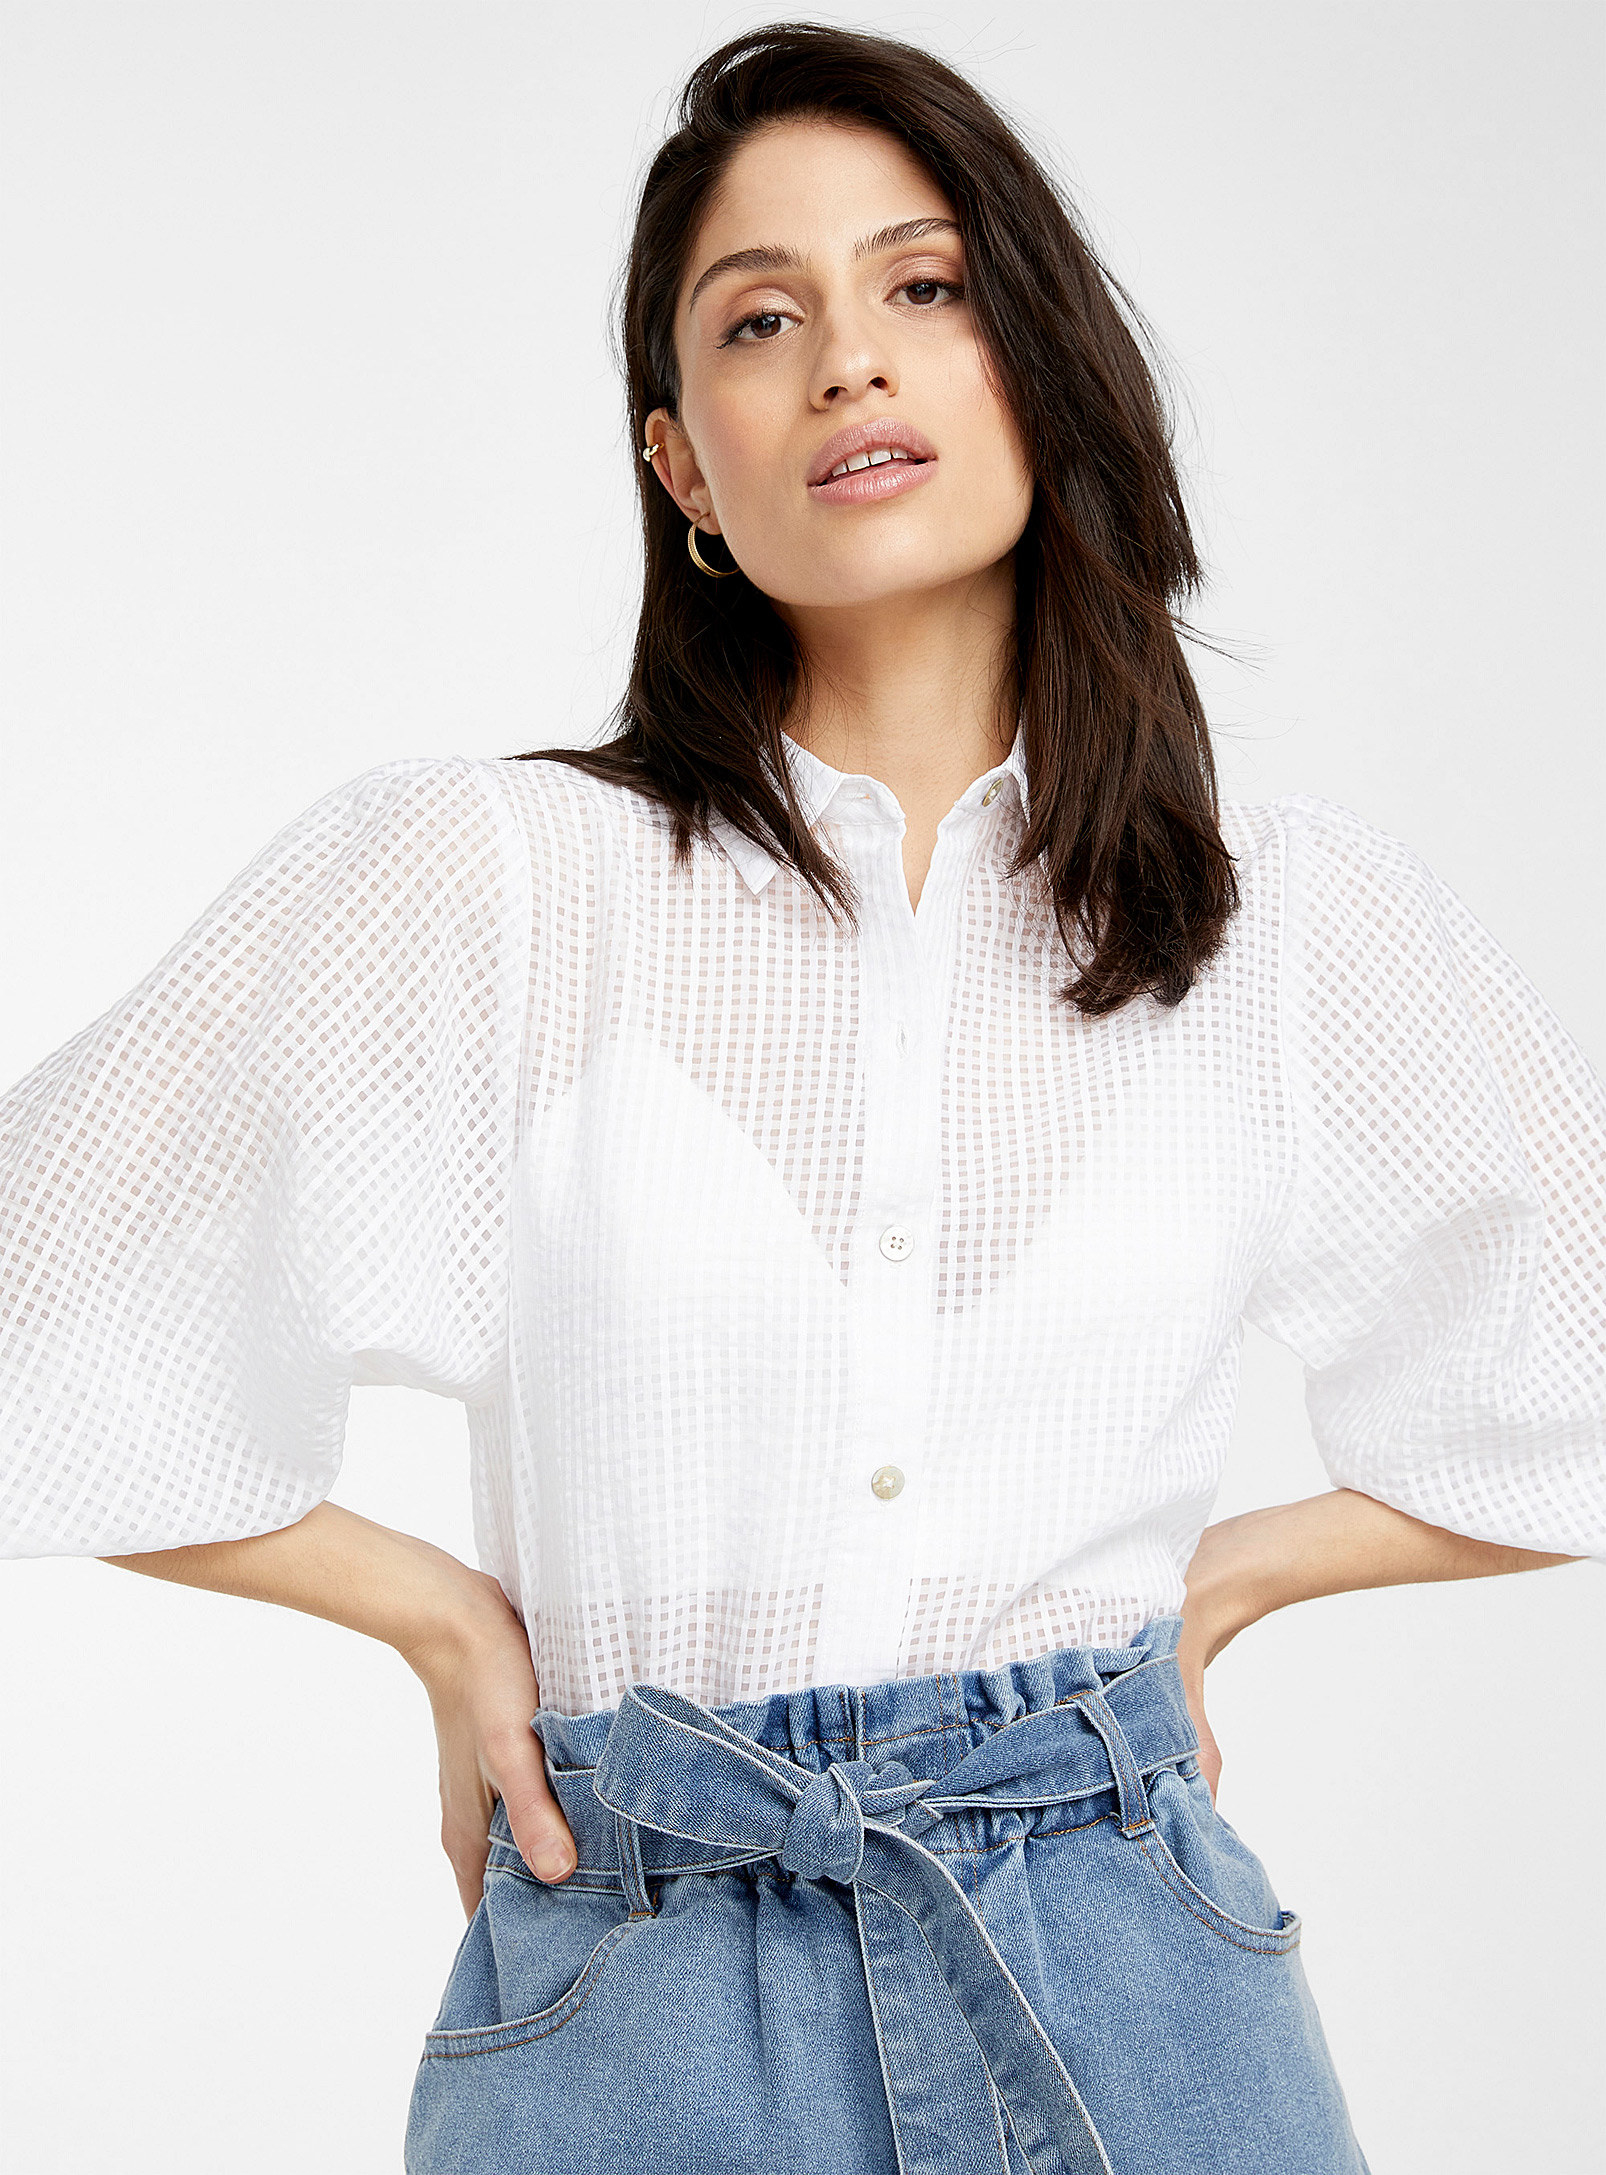 A person wearing a button-up shirt with oversized sleeves